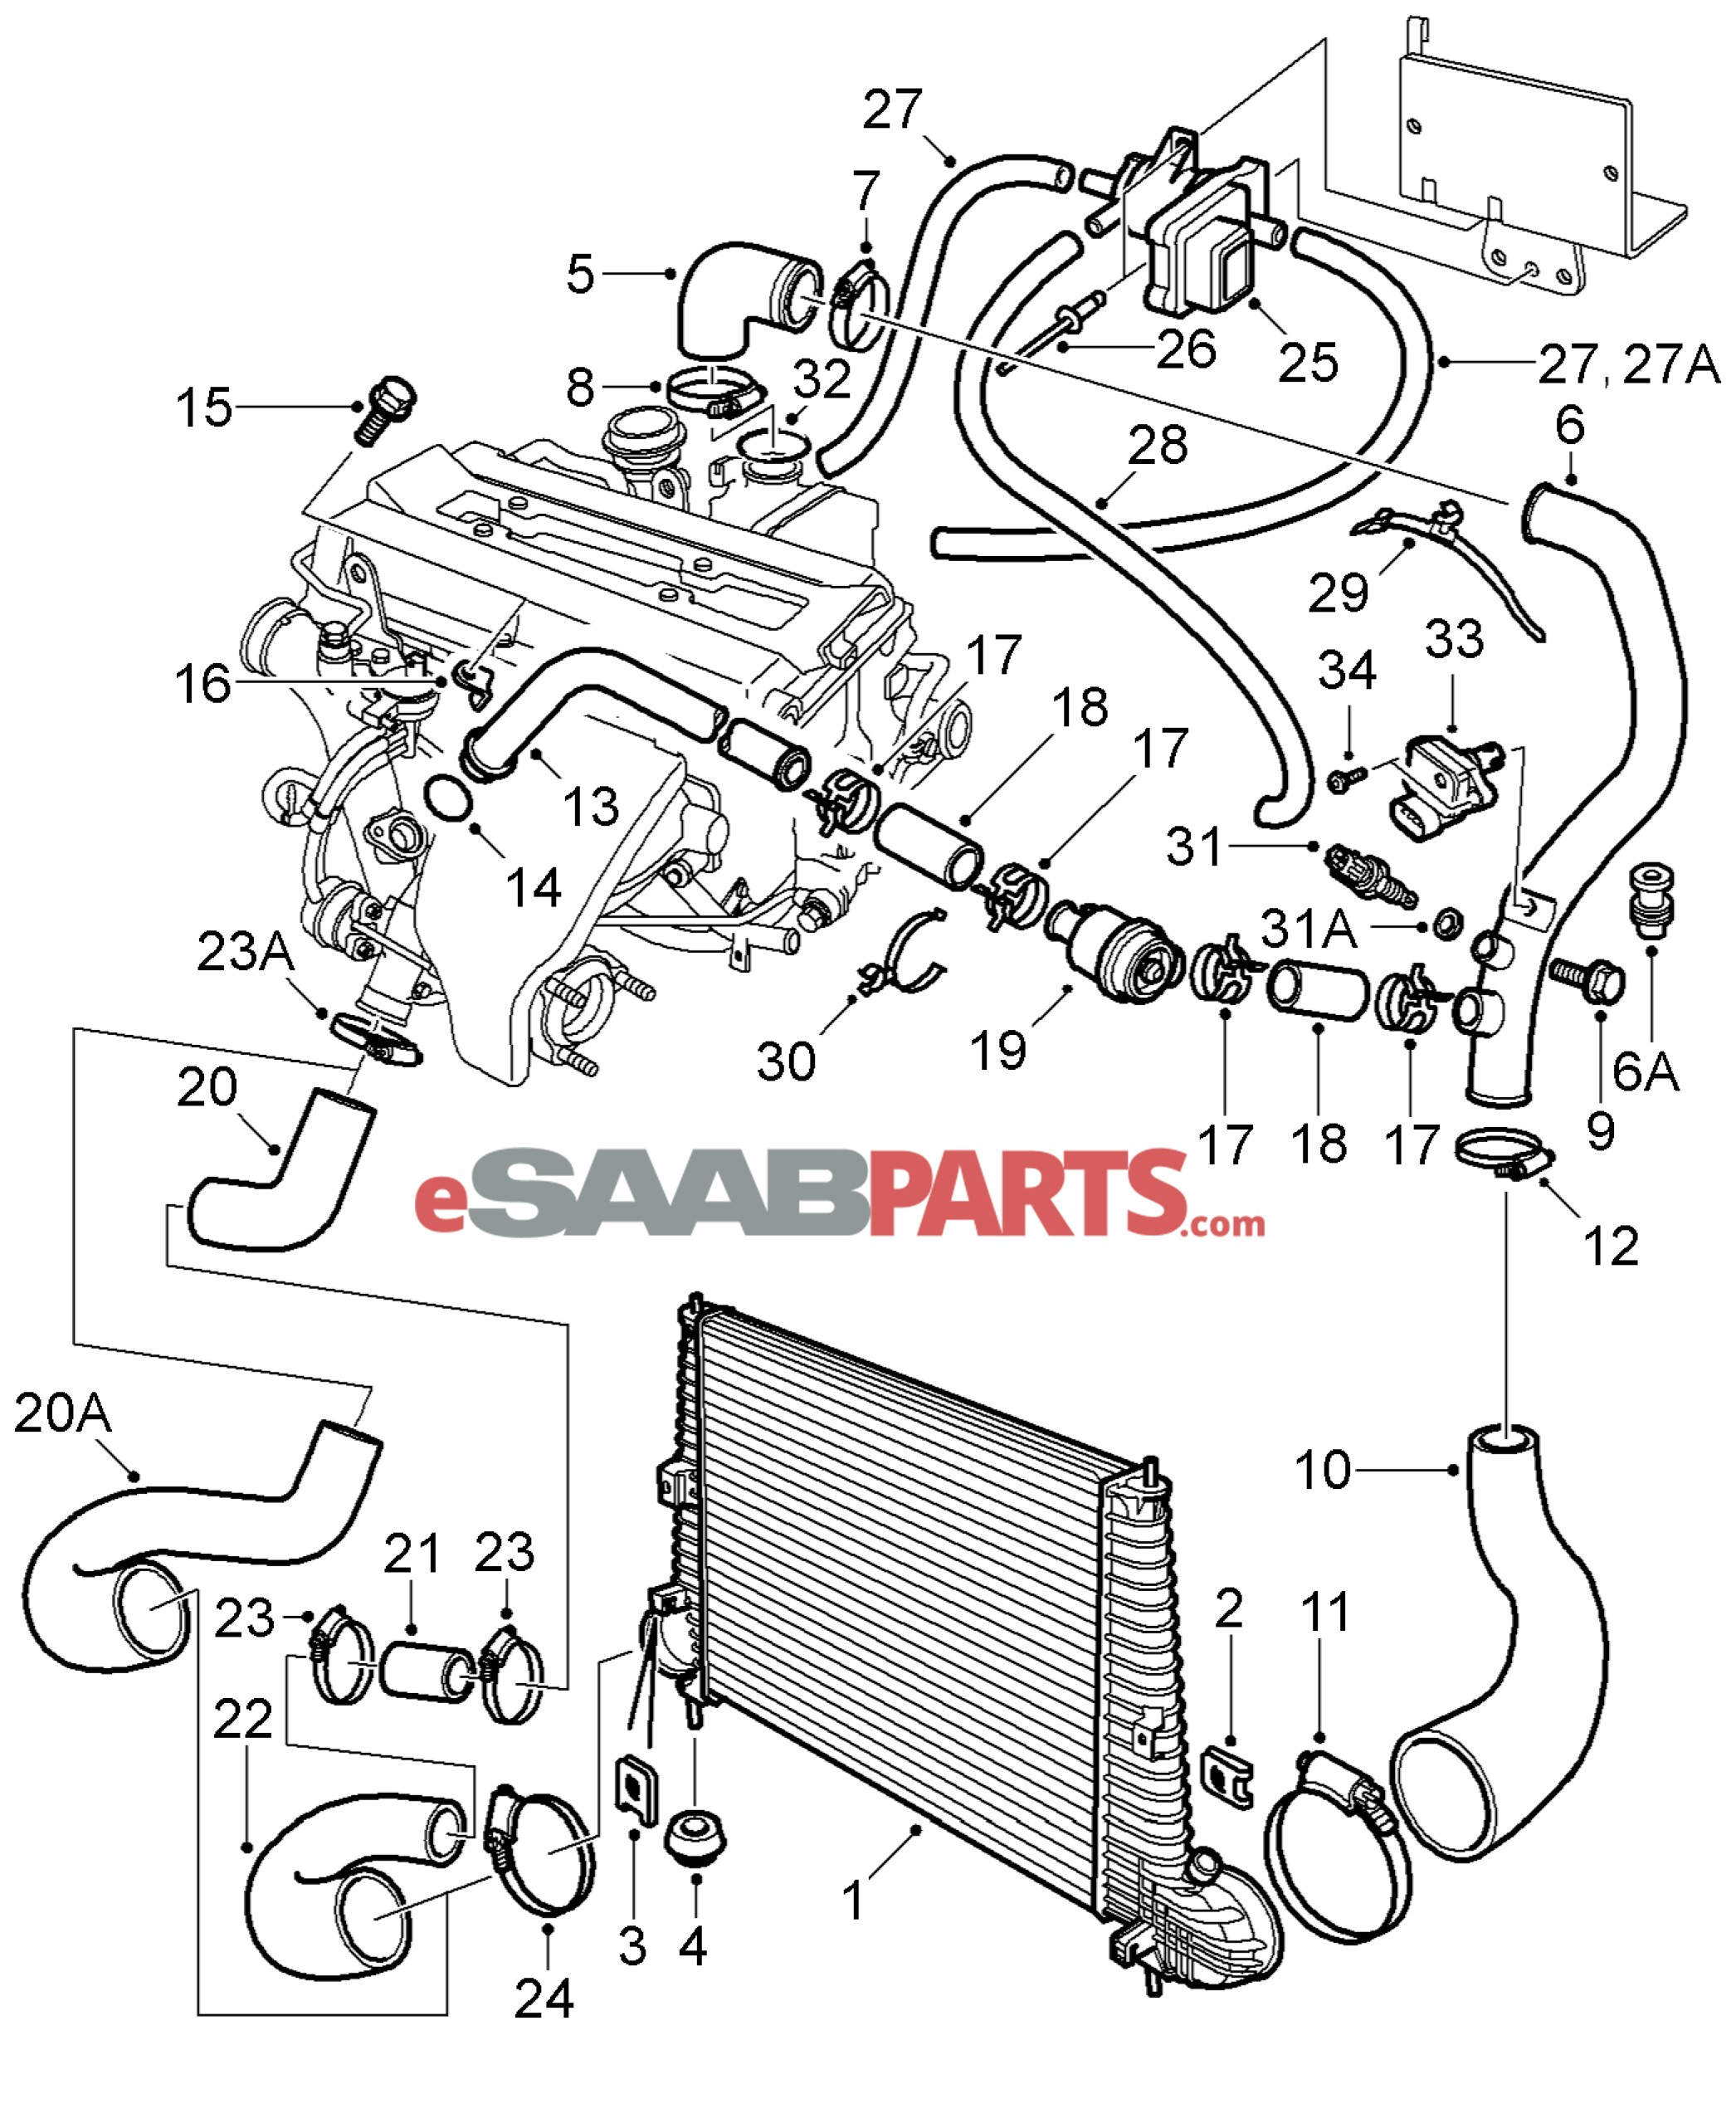 2007 Ford Focus 2 0 Fuse Box Diagram Worksheet And Wiring Se Wire Center U2022 Rh 207 246 123 107 2003 3 Maxi Location On Layout